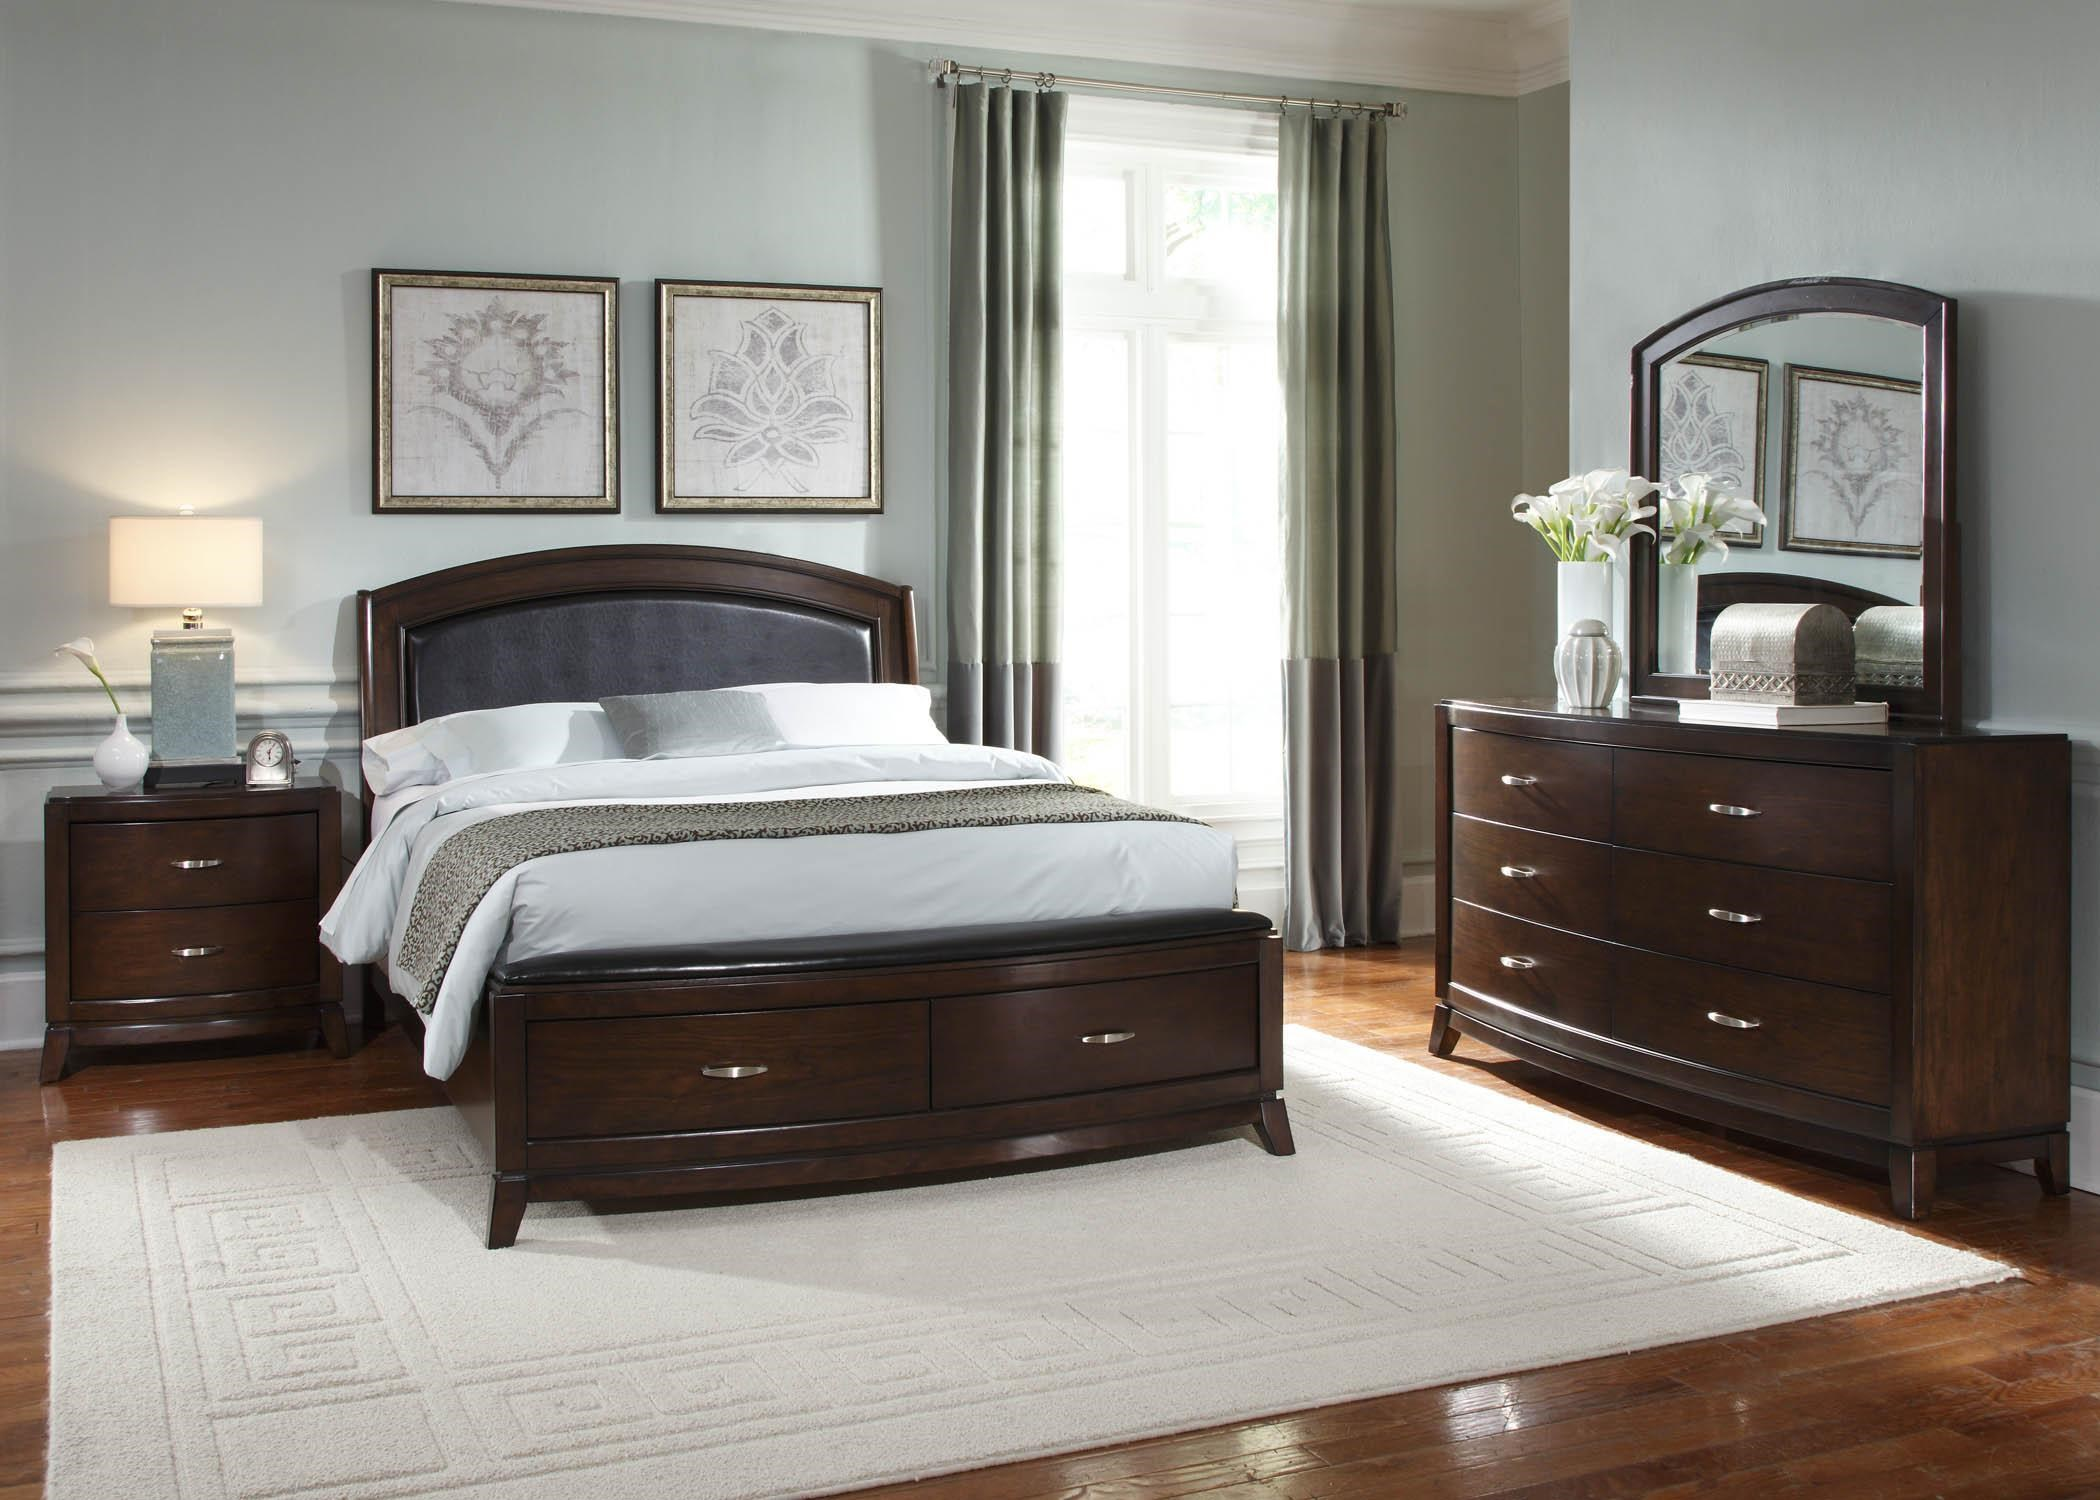 Avalon 5 Piece Queen Bedroom Group by Liberty Furniture at Value City Furniture